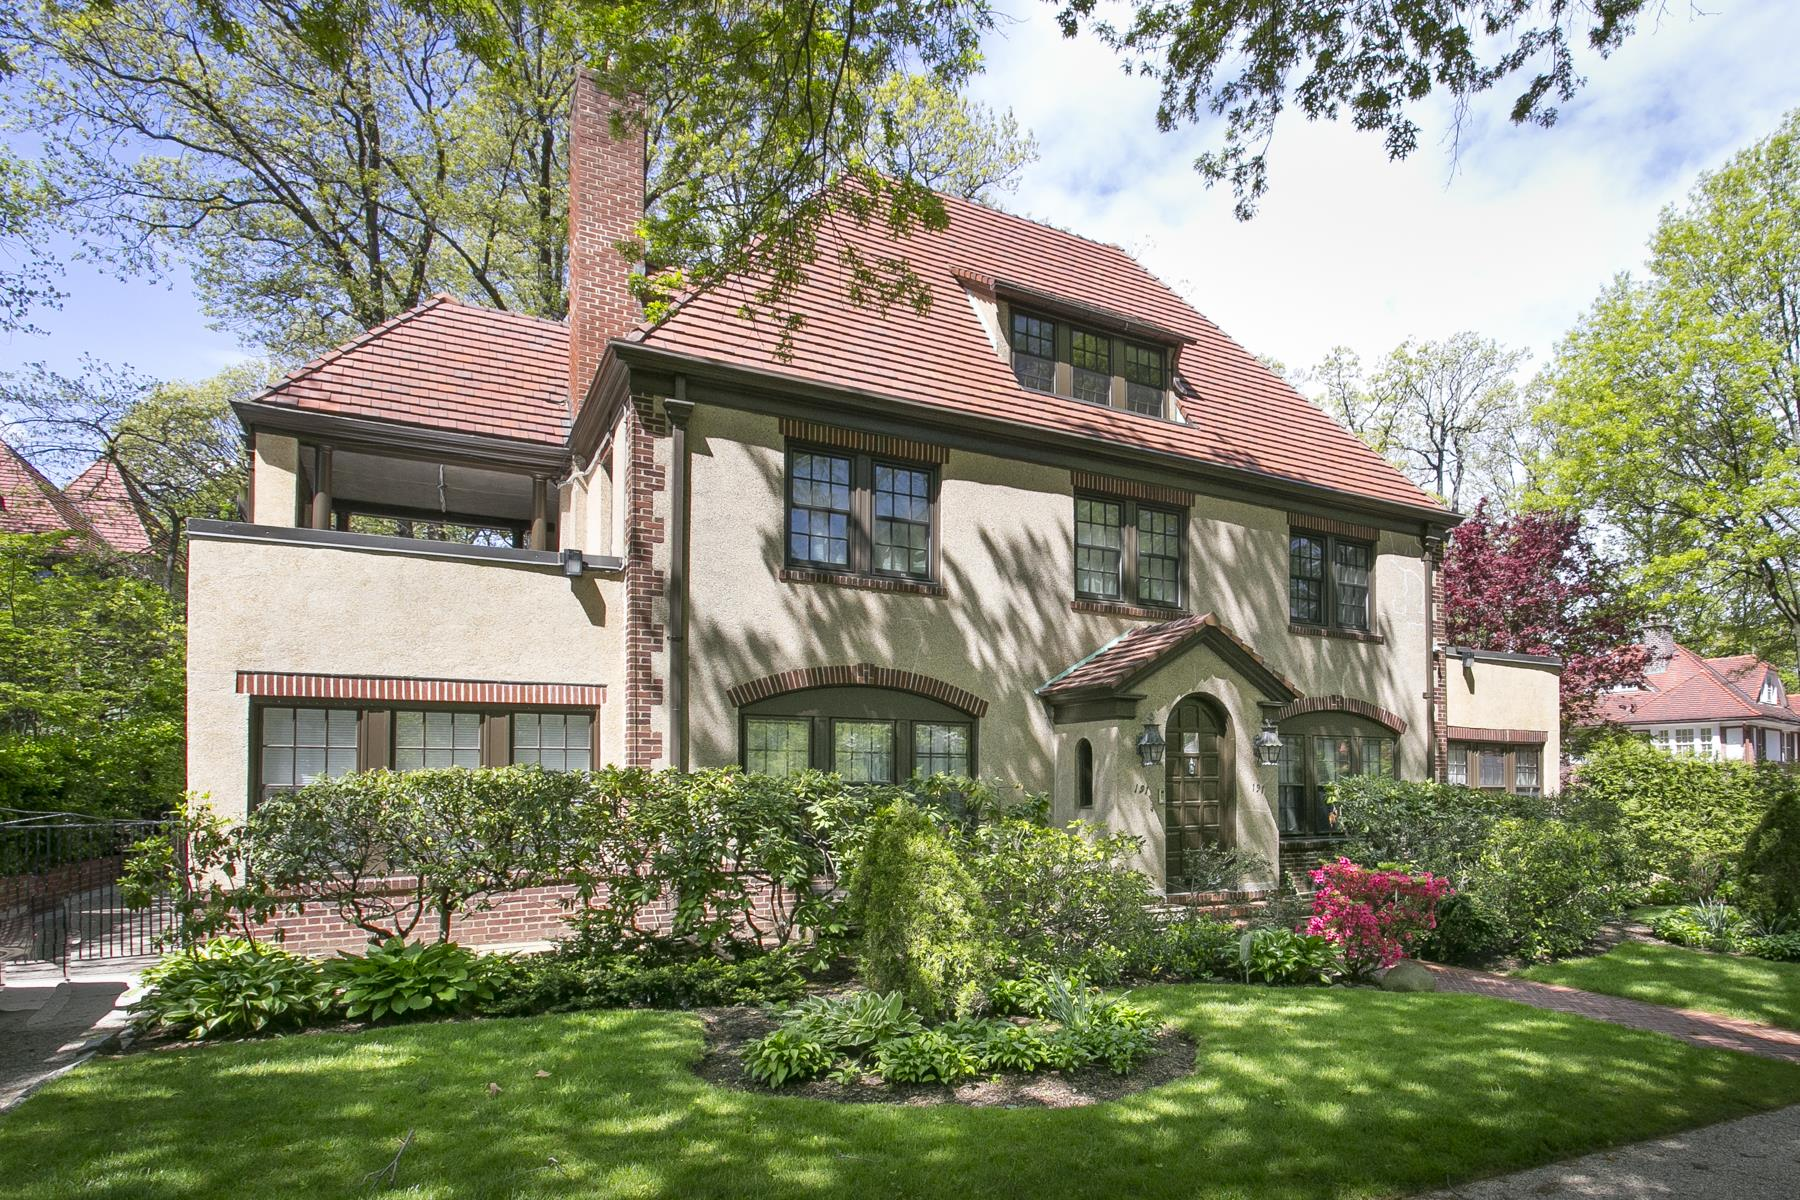 """Single Family Homes for Sale at """"ELEGANT EMBASSY ROW COLONIAL"""" 191 Greenway North, Forest Hills Gardens, Queens, New York 11375 United States"""